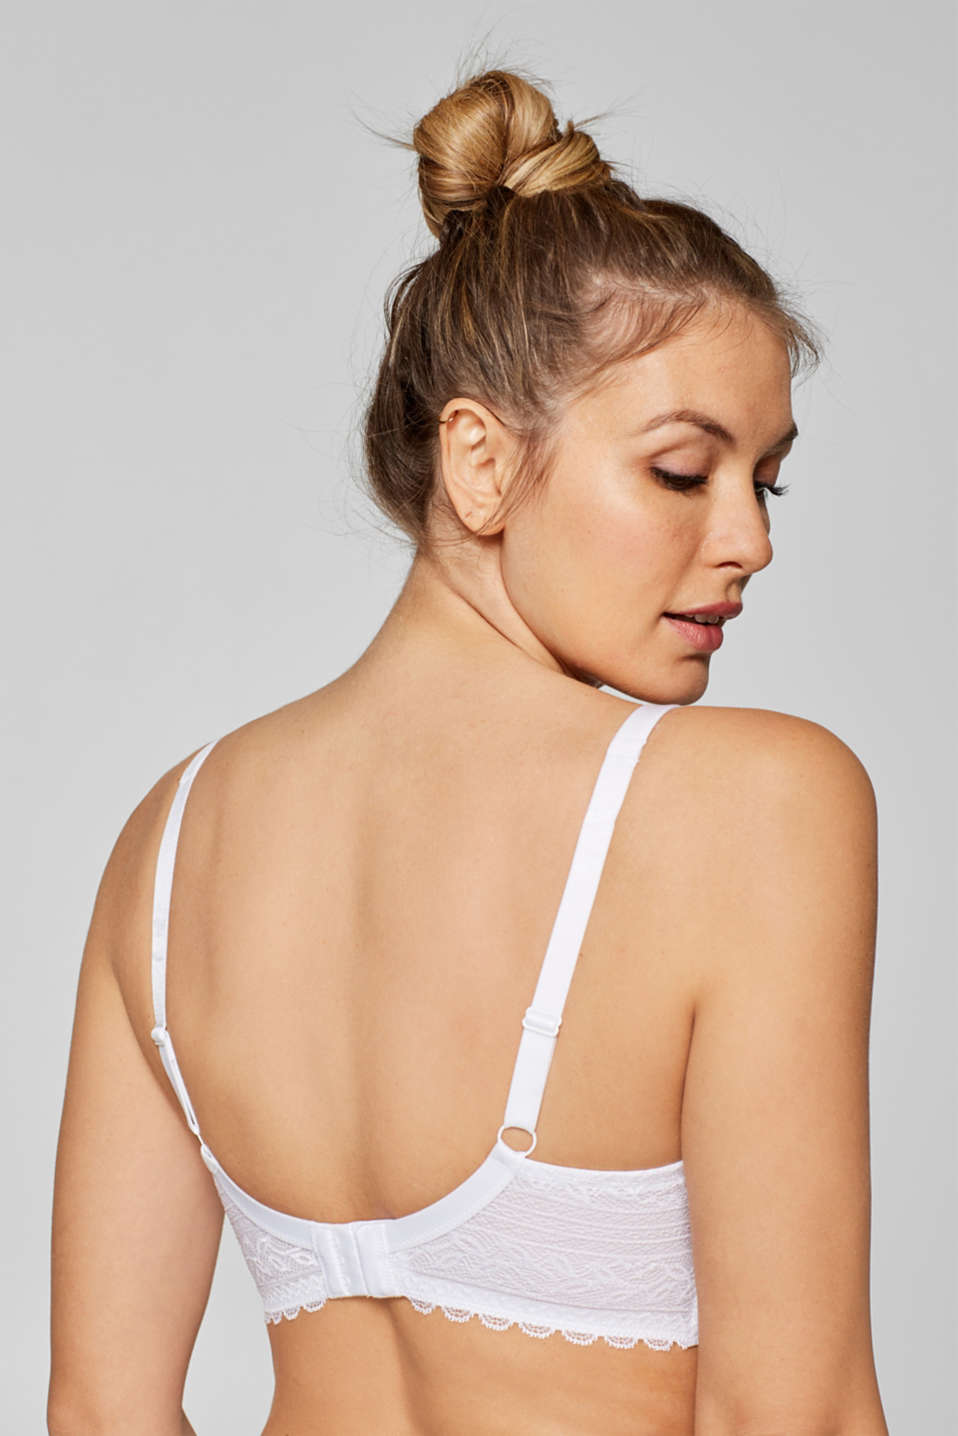 Padded underwire bra for larger cup sizes